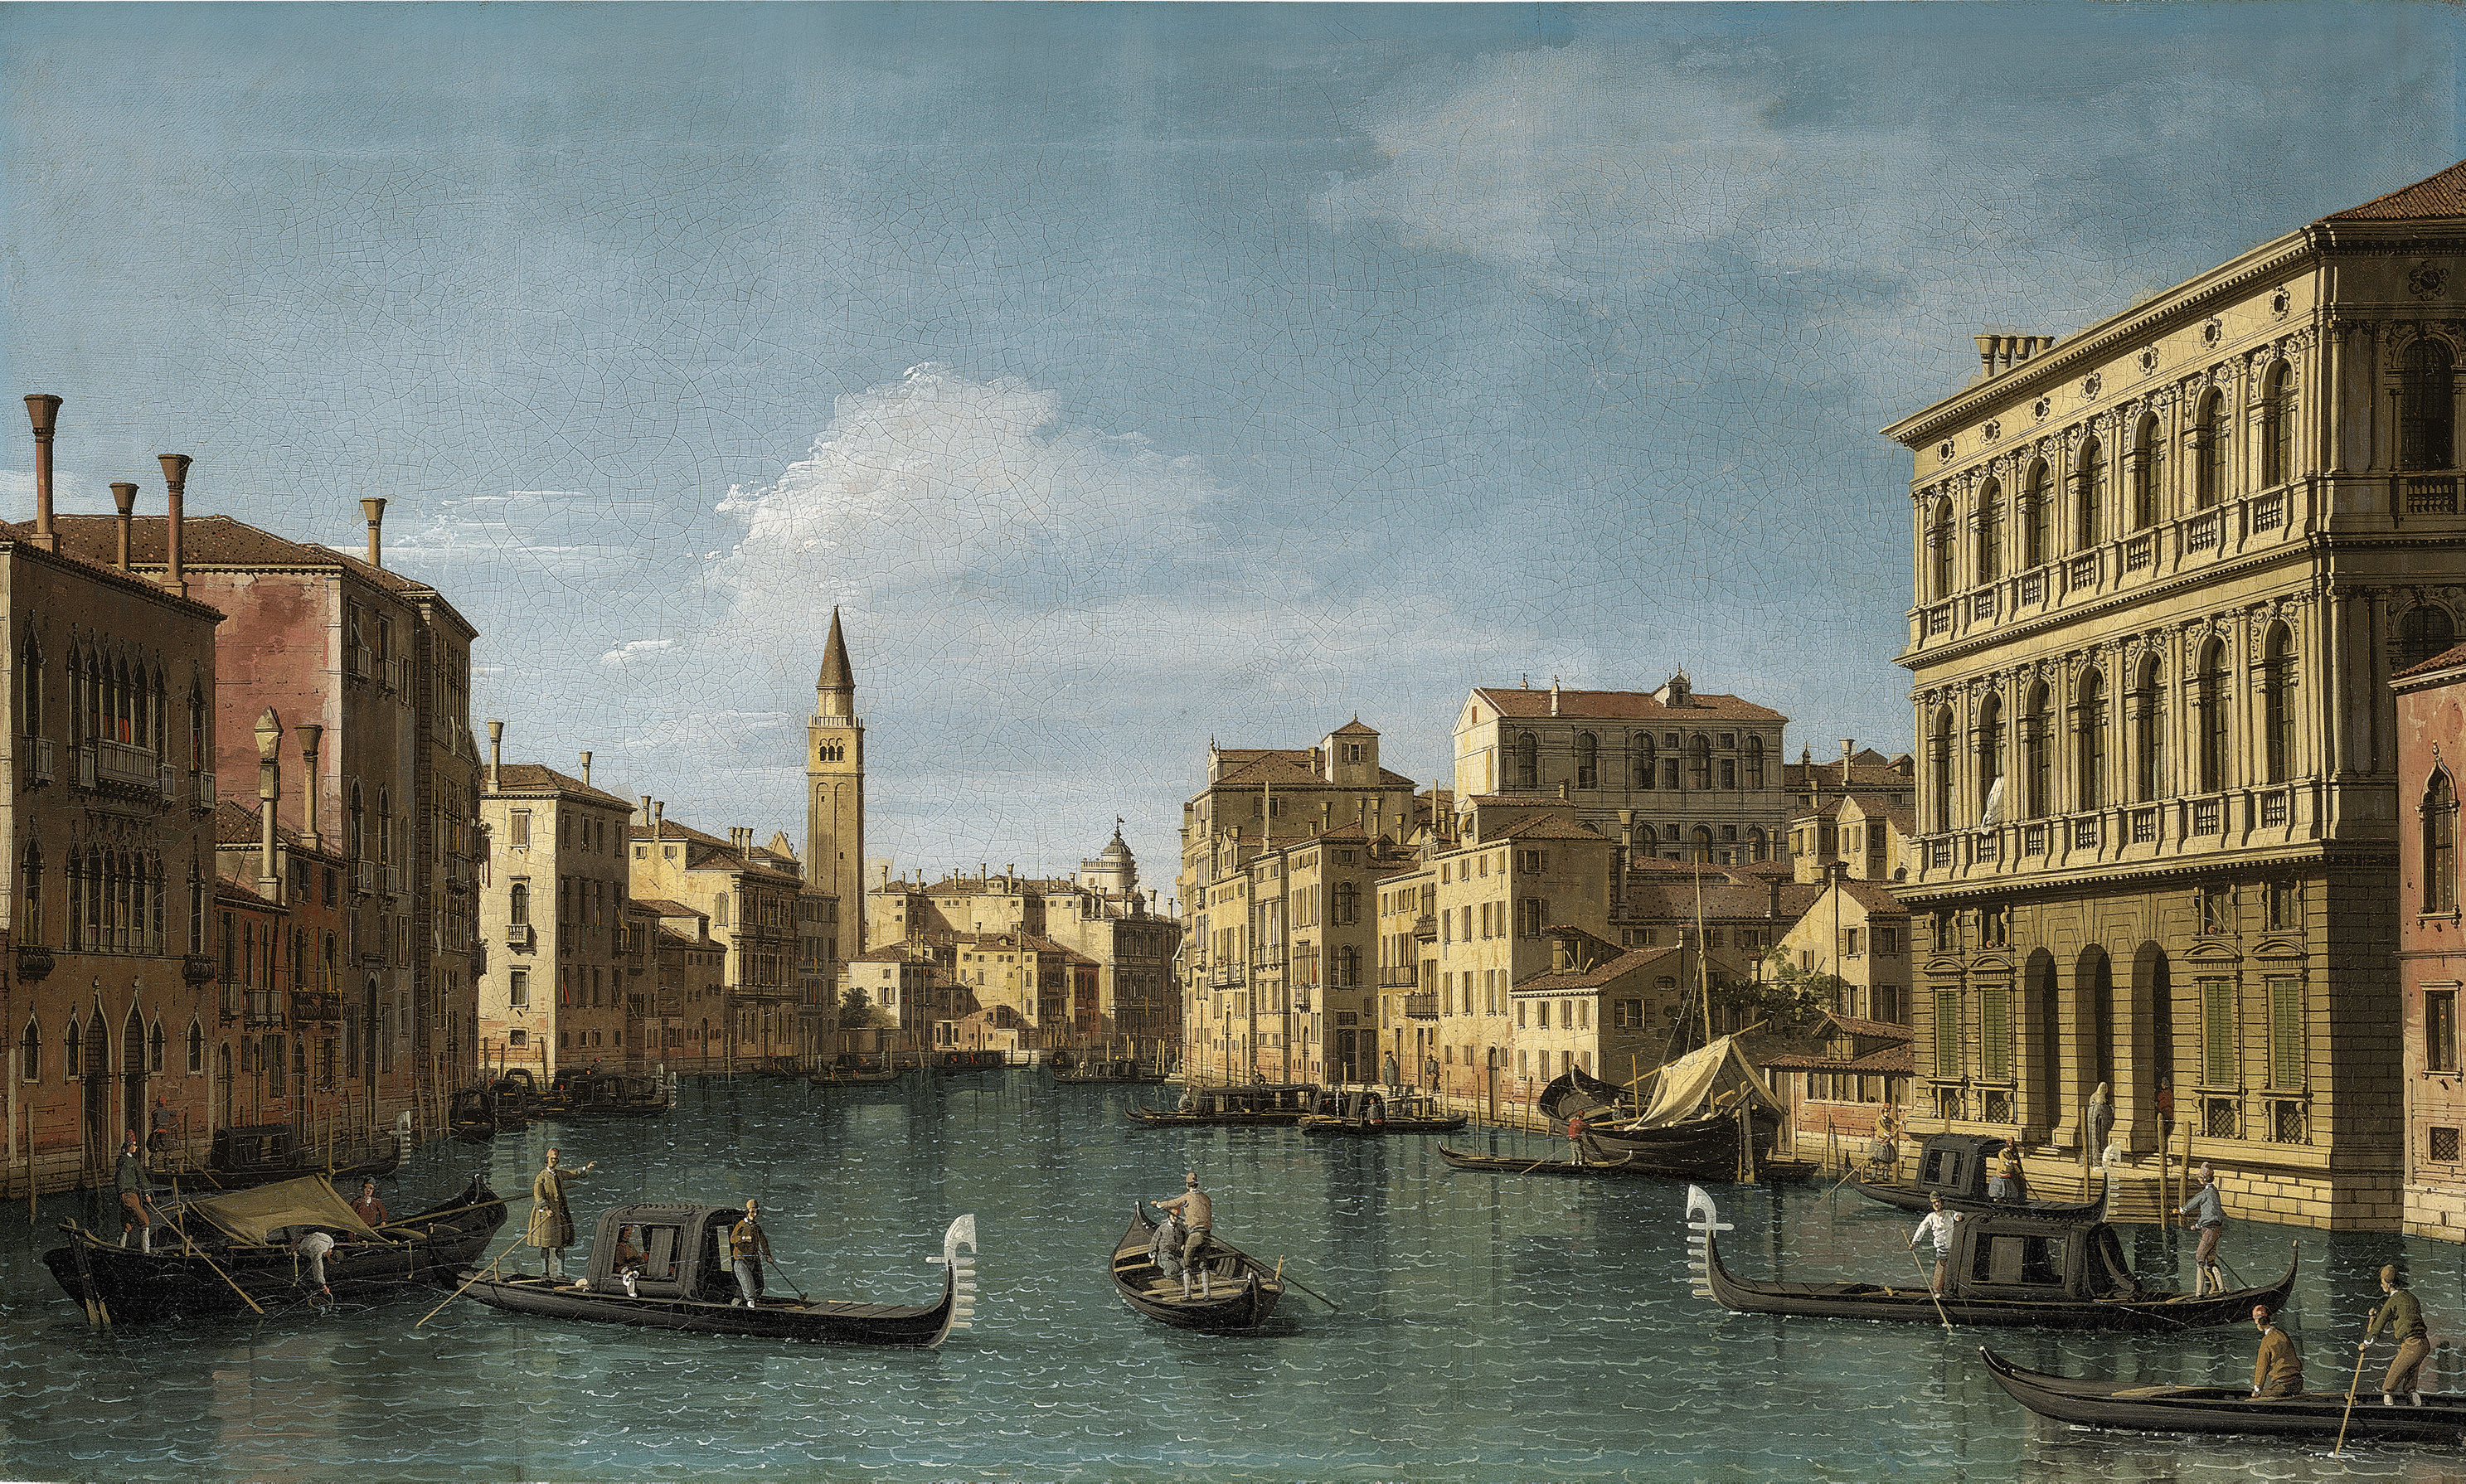 The Grand Canal, Venice, looking north-west from the Ca' Corner to the Ca' Contarini degli Scrigni, with the campanile of Santa Maria della Carità